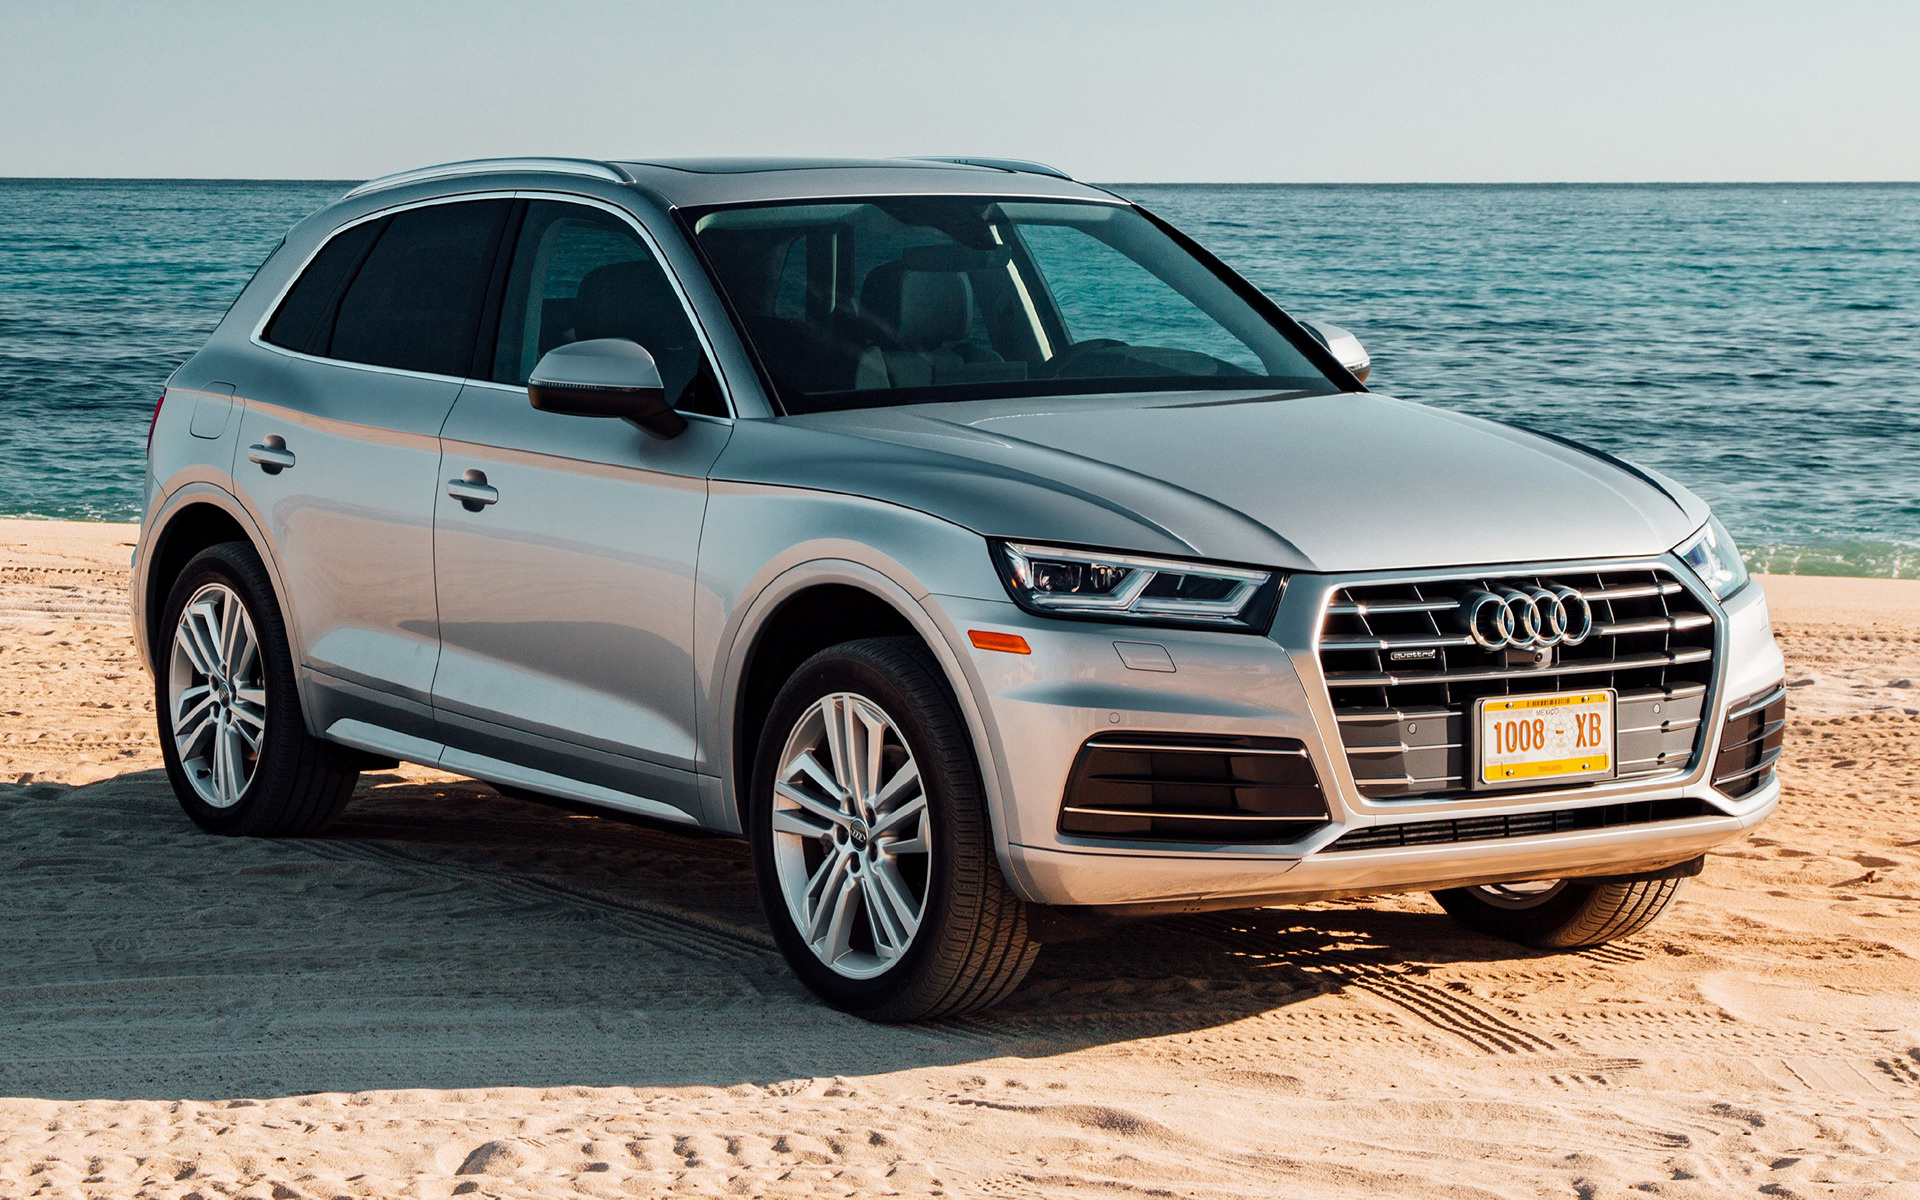 audi q5 beach wallpaper 66017